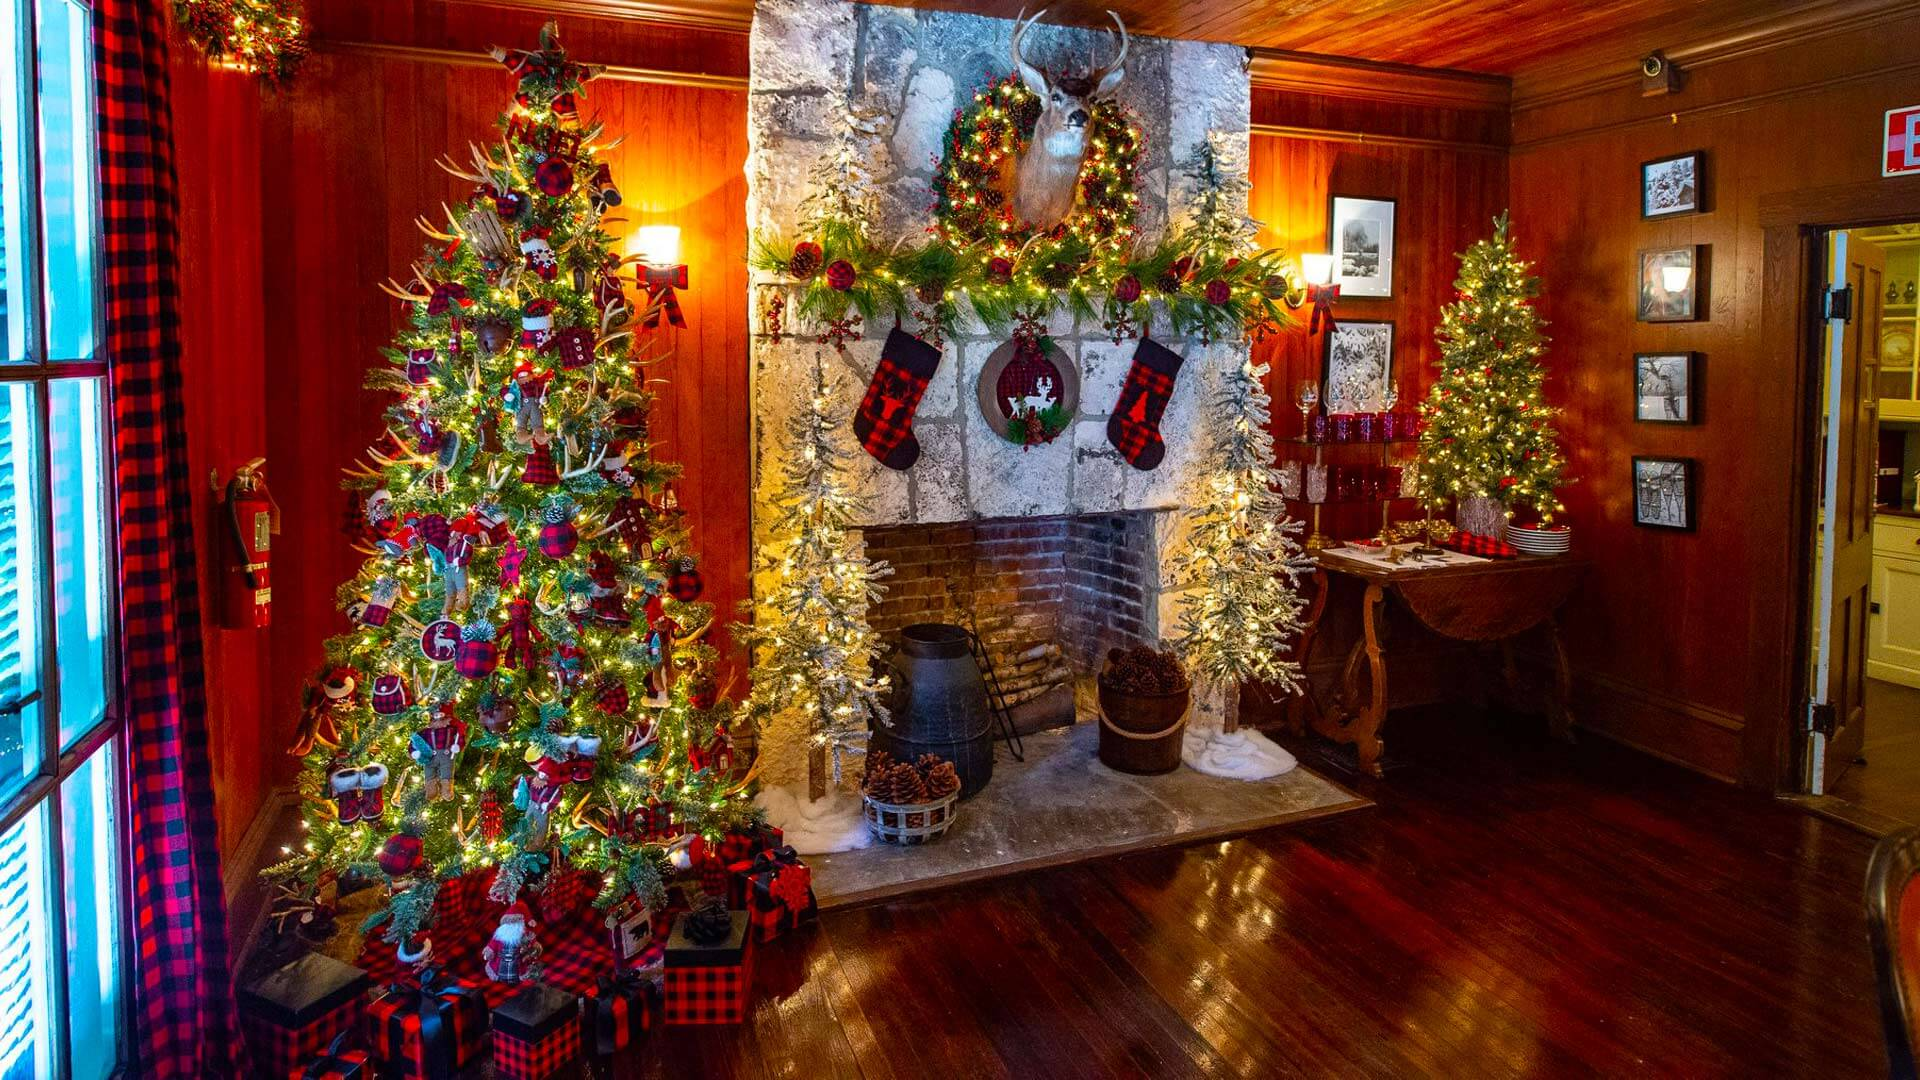 Christmas tree and decorations in living room at deering estate